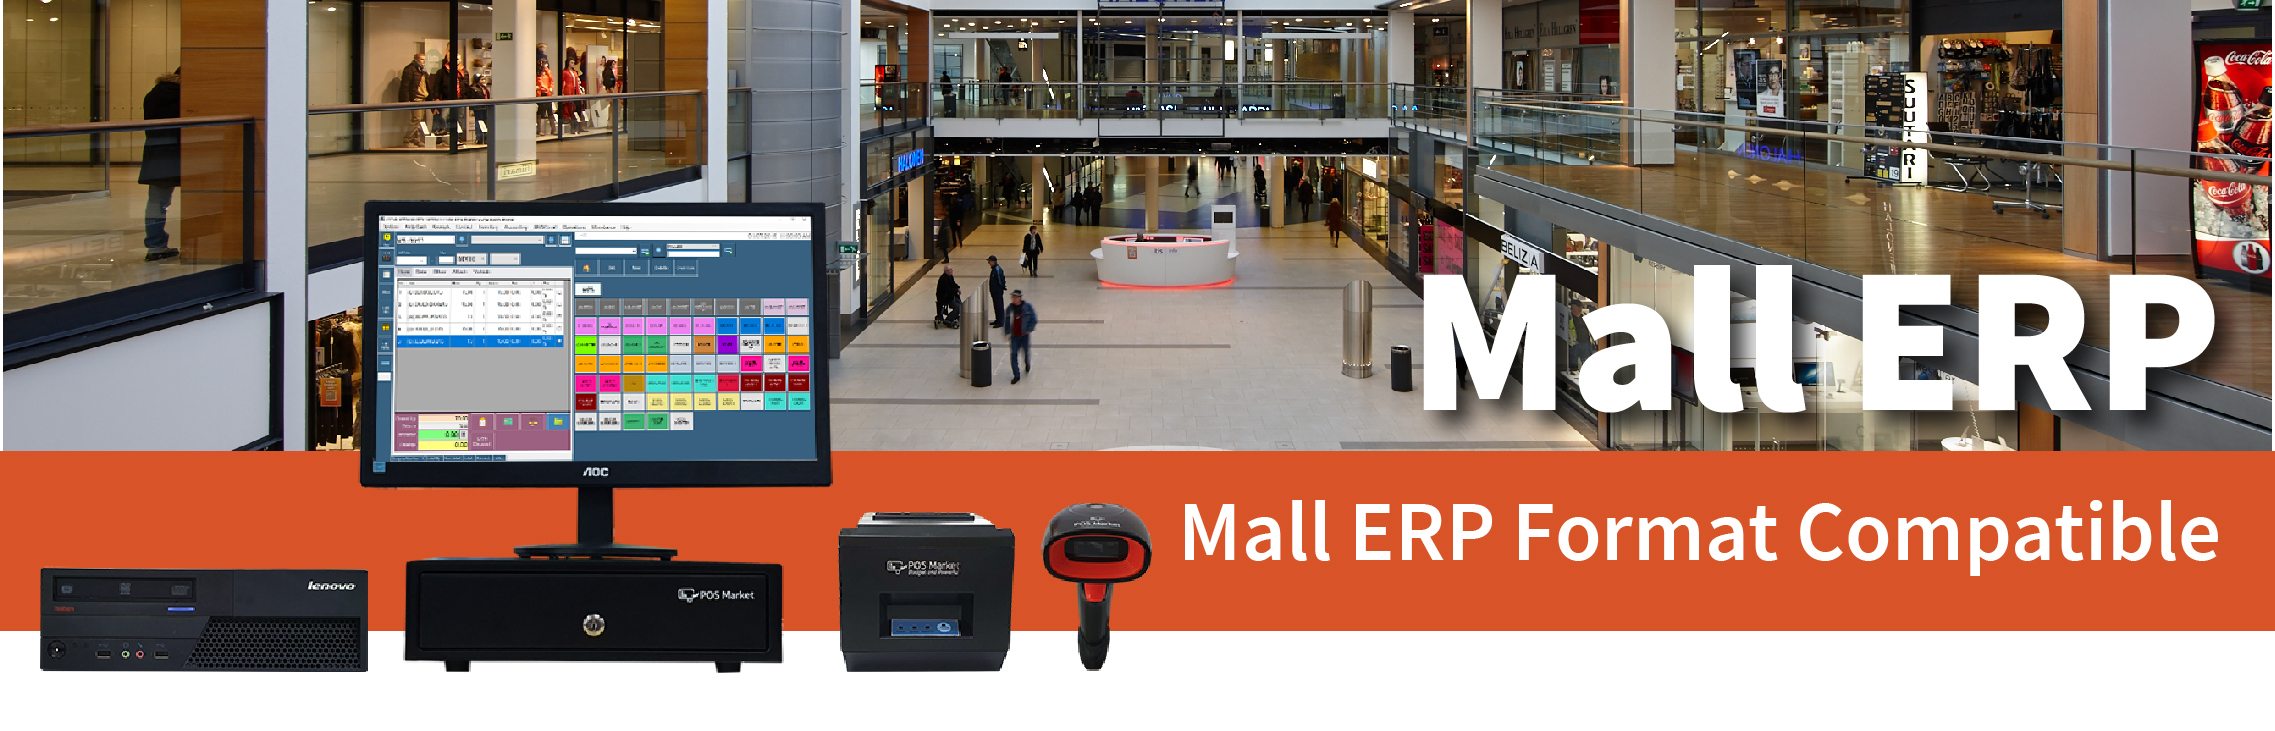 mall-erp-pos-system